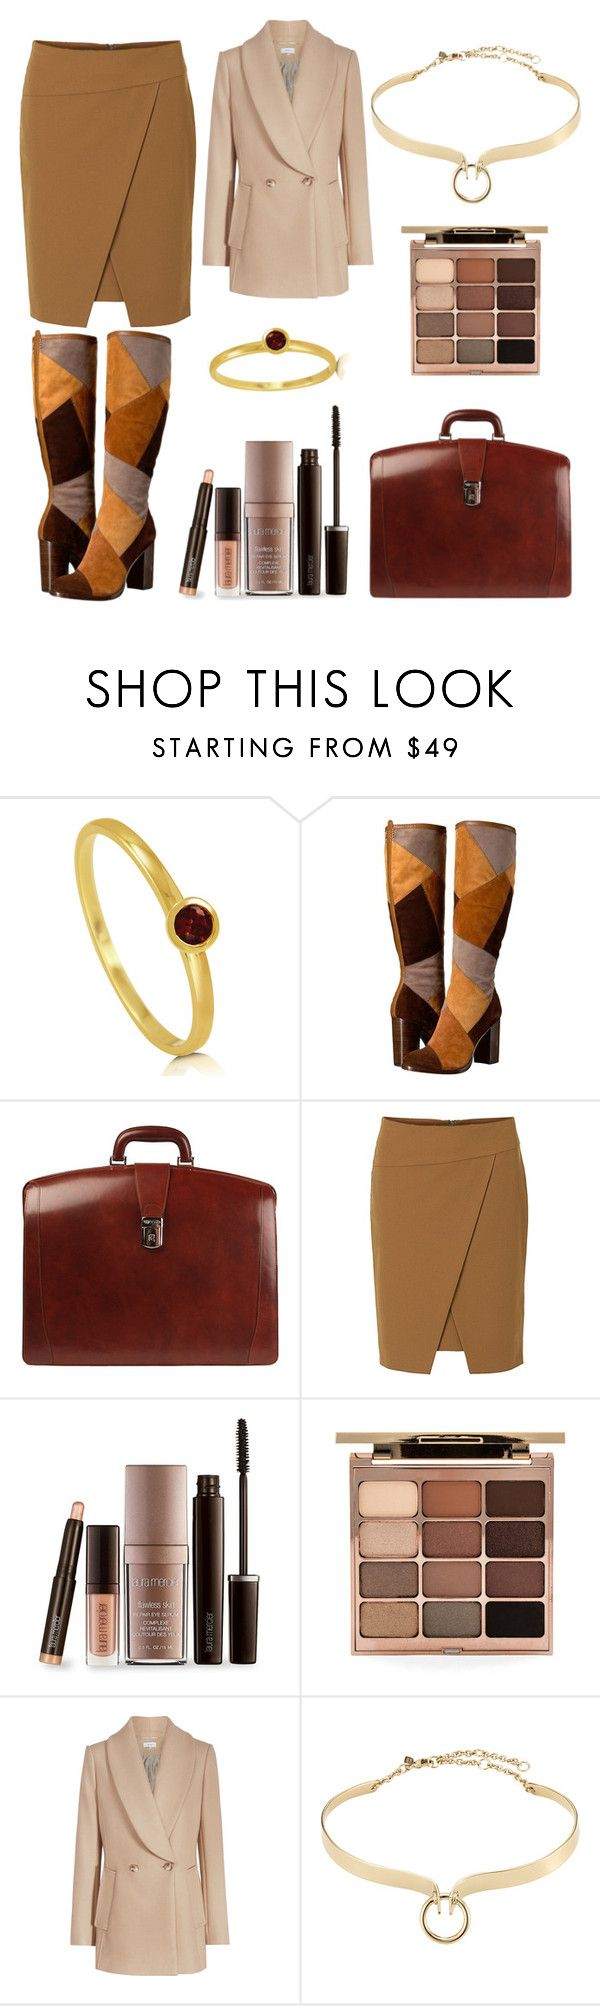 """""""Traveling For Business"""" by mjstcloud13 ❤ liked on Polyvore featuring BERRICLE, Frye, Bosca, Betty Barclay, Laura Mercier, Stila and Alexis Bittar"""